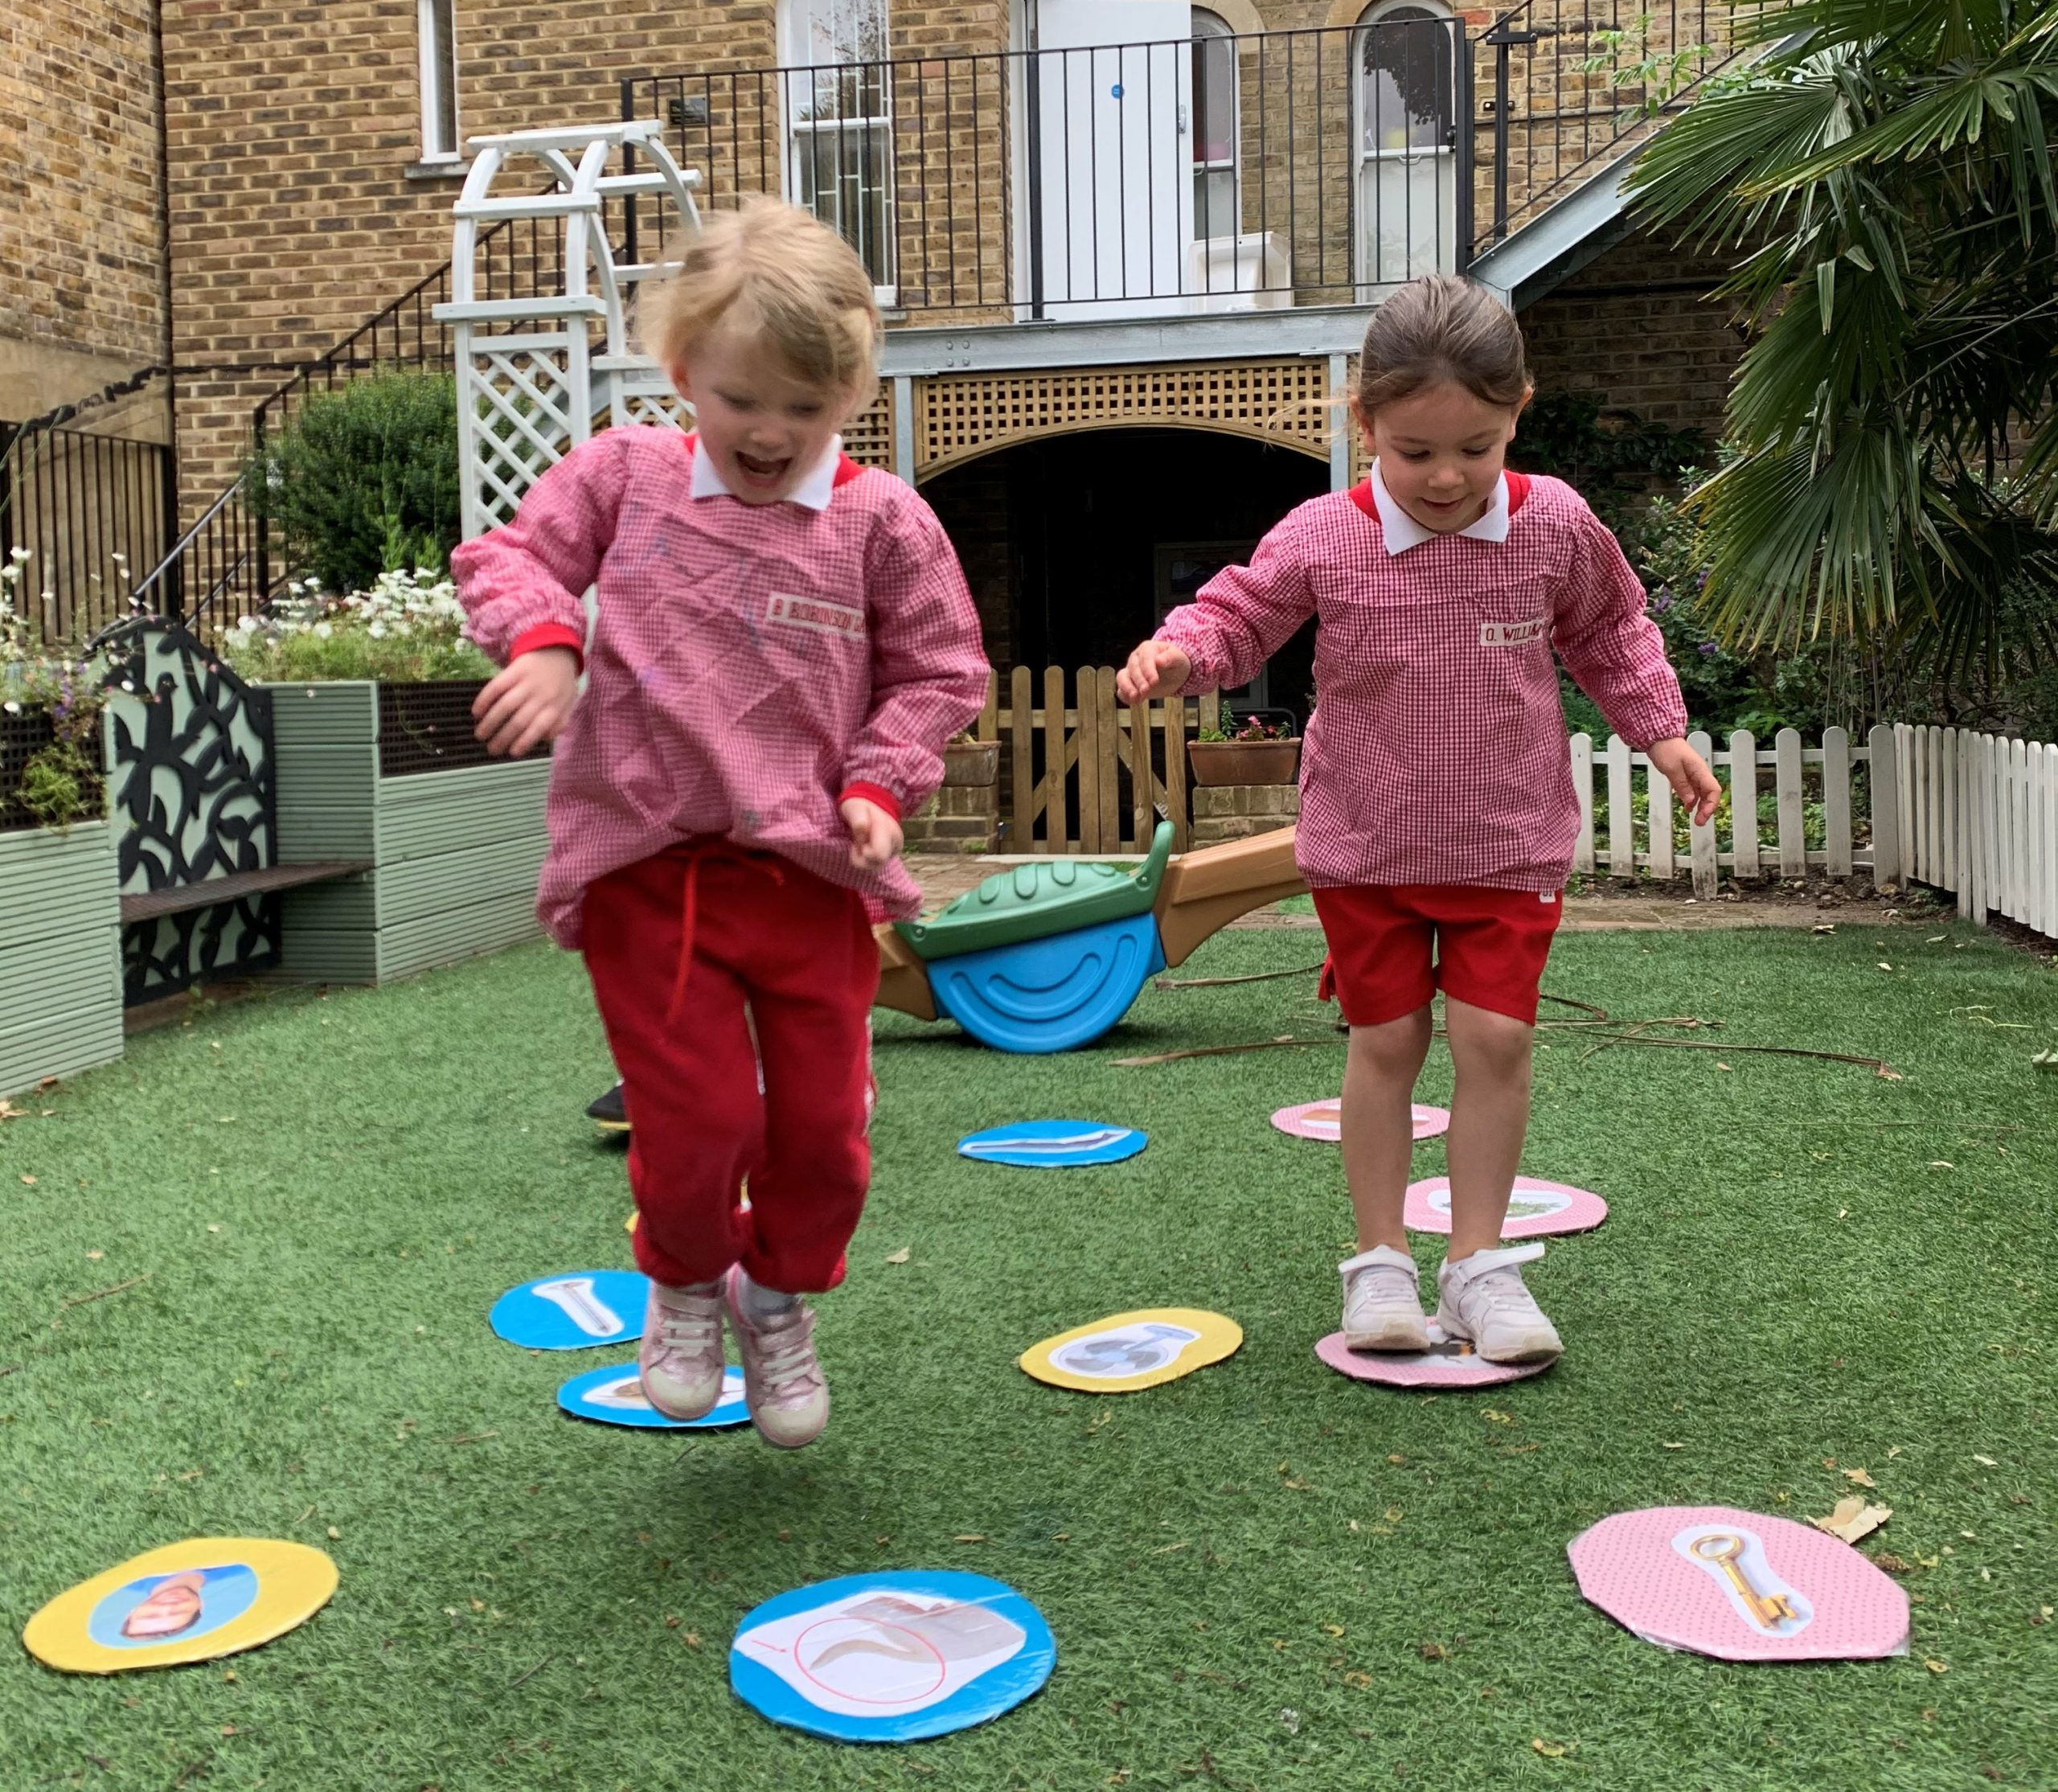 Pre-School-Girls-in-Garden